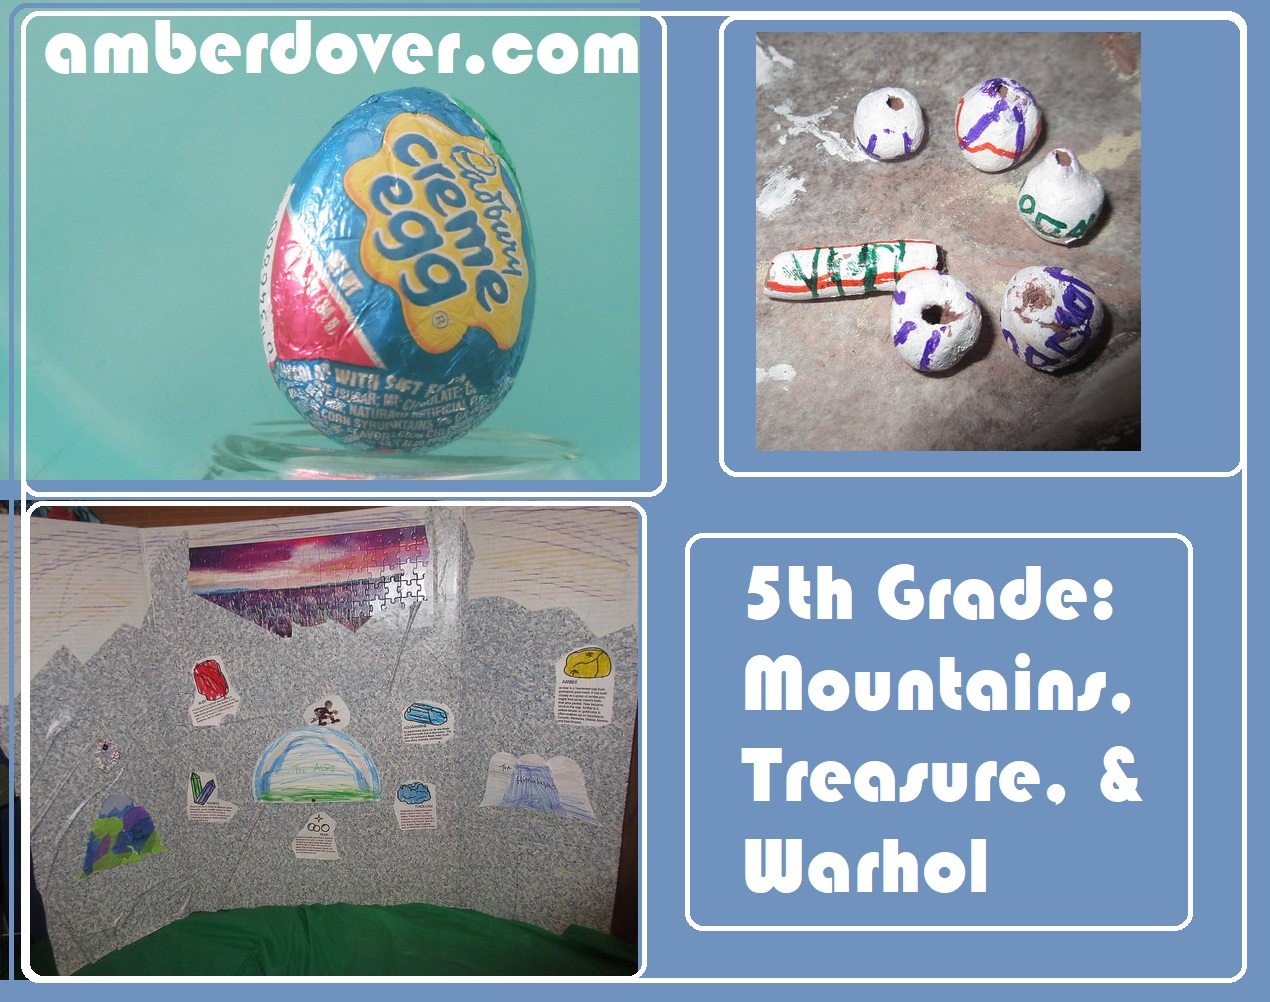 5th Grade: Mountains, Treasure, & Warhol - amberdover.com